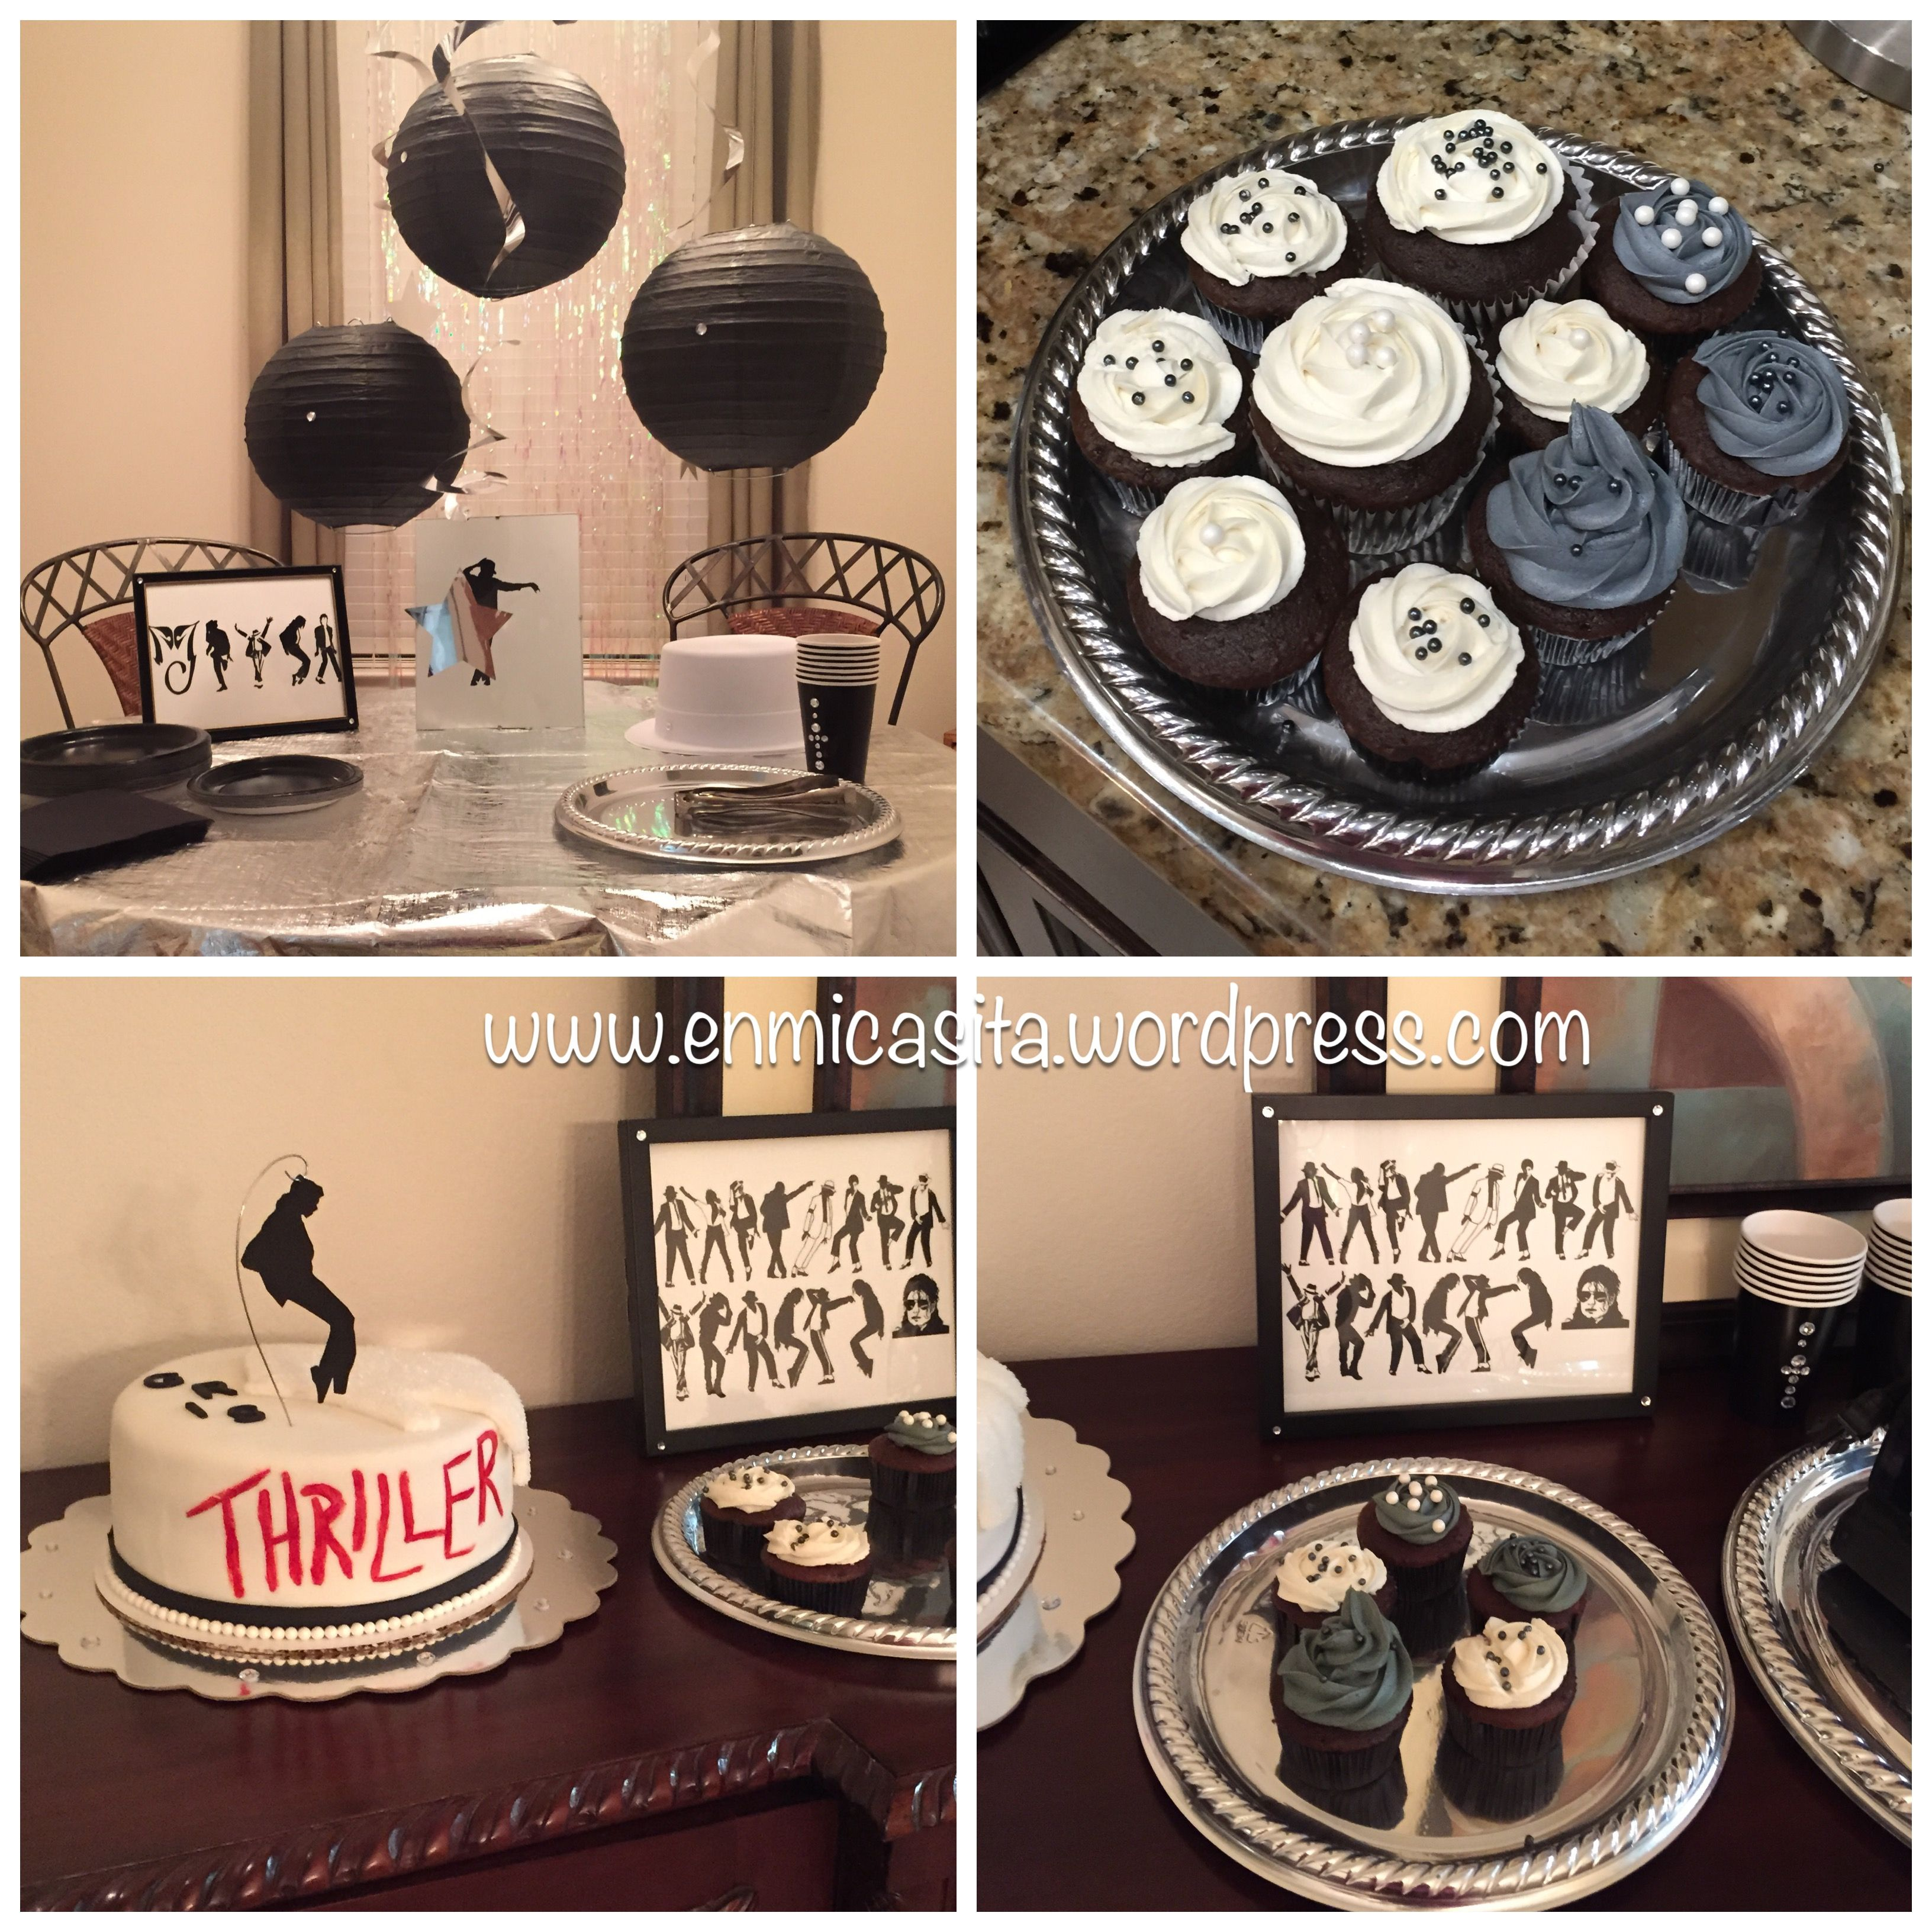 Michael Jackson Thriller Birthday Party and Cake | Michael jackson ...